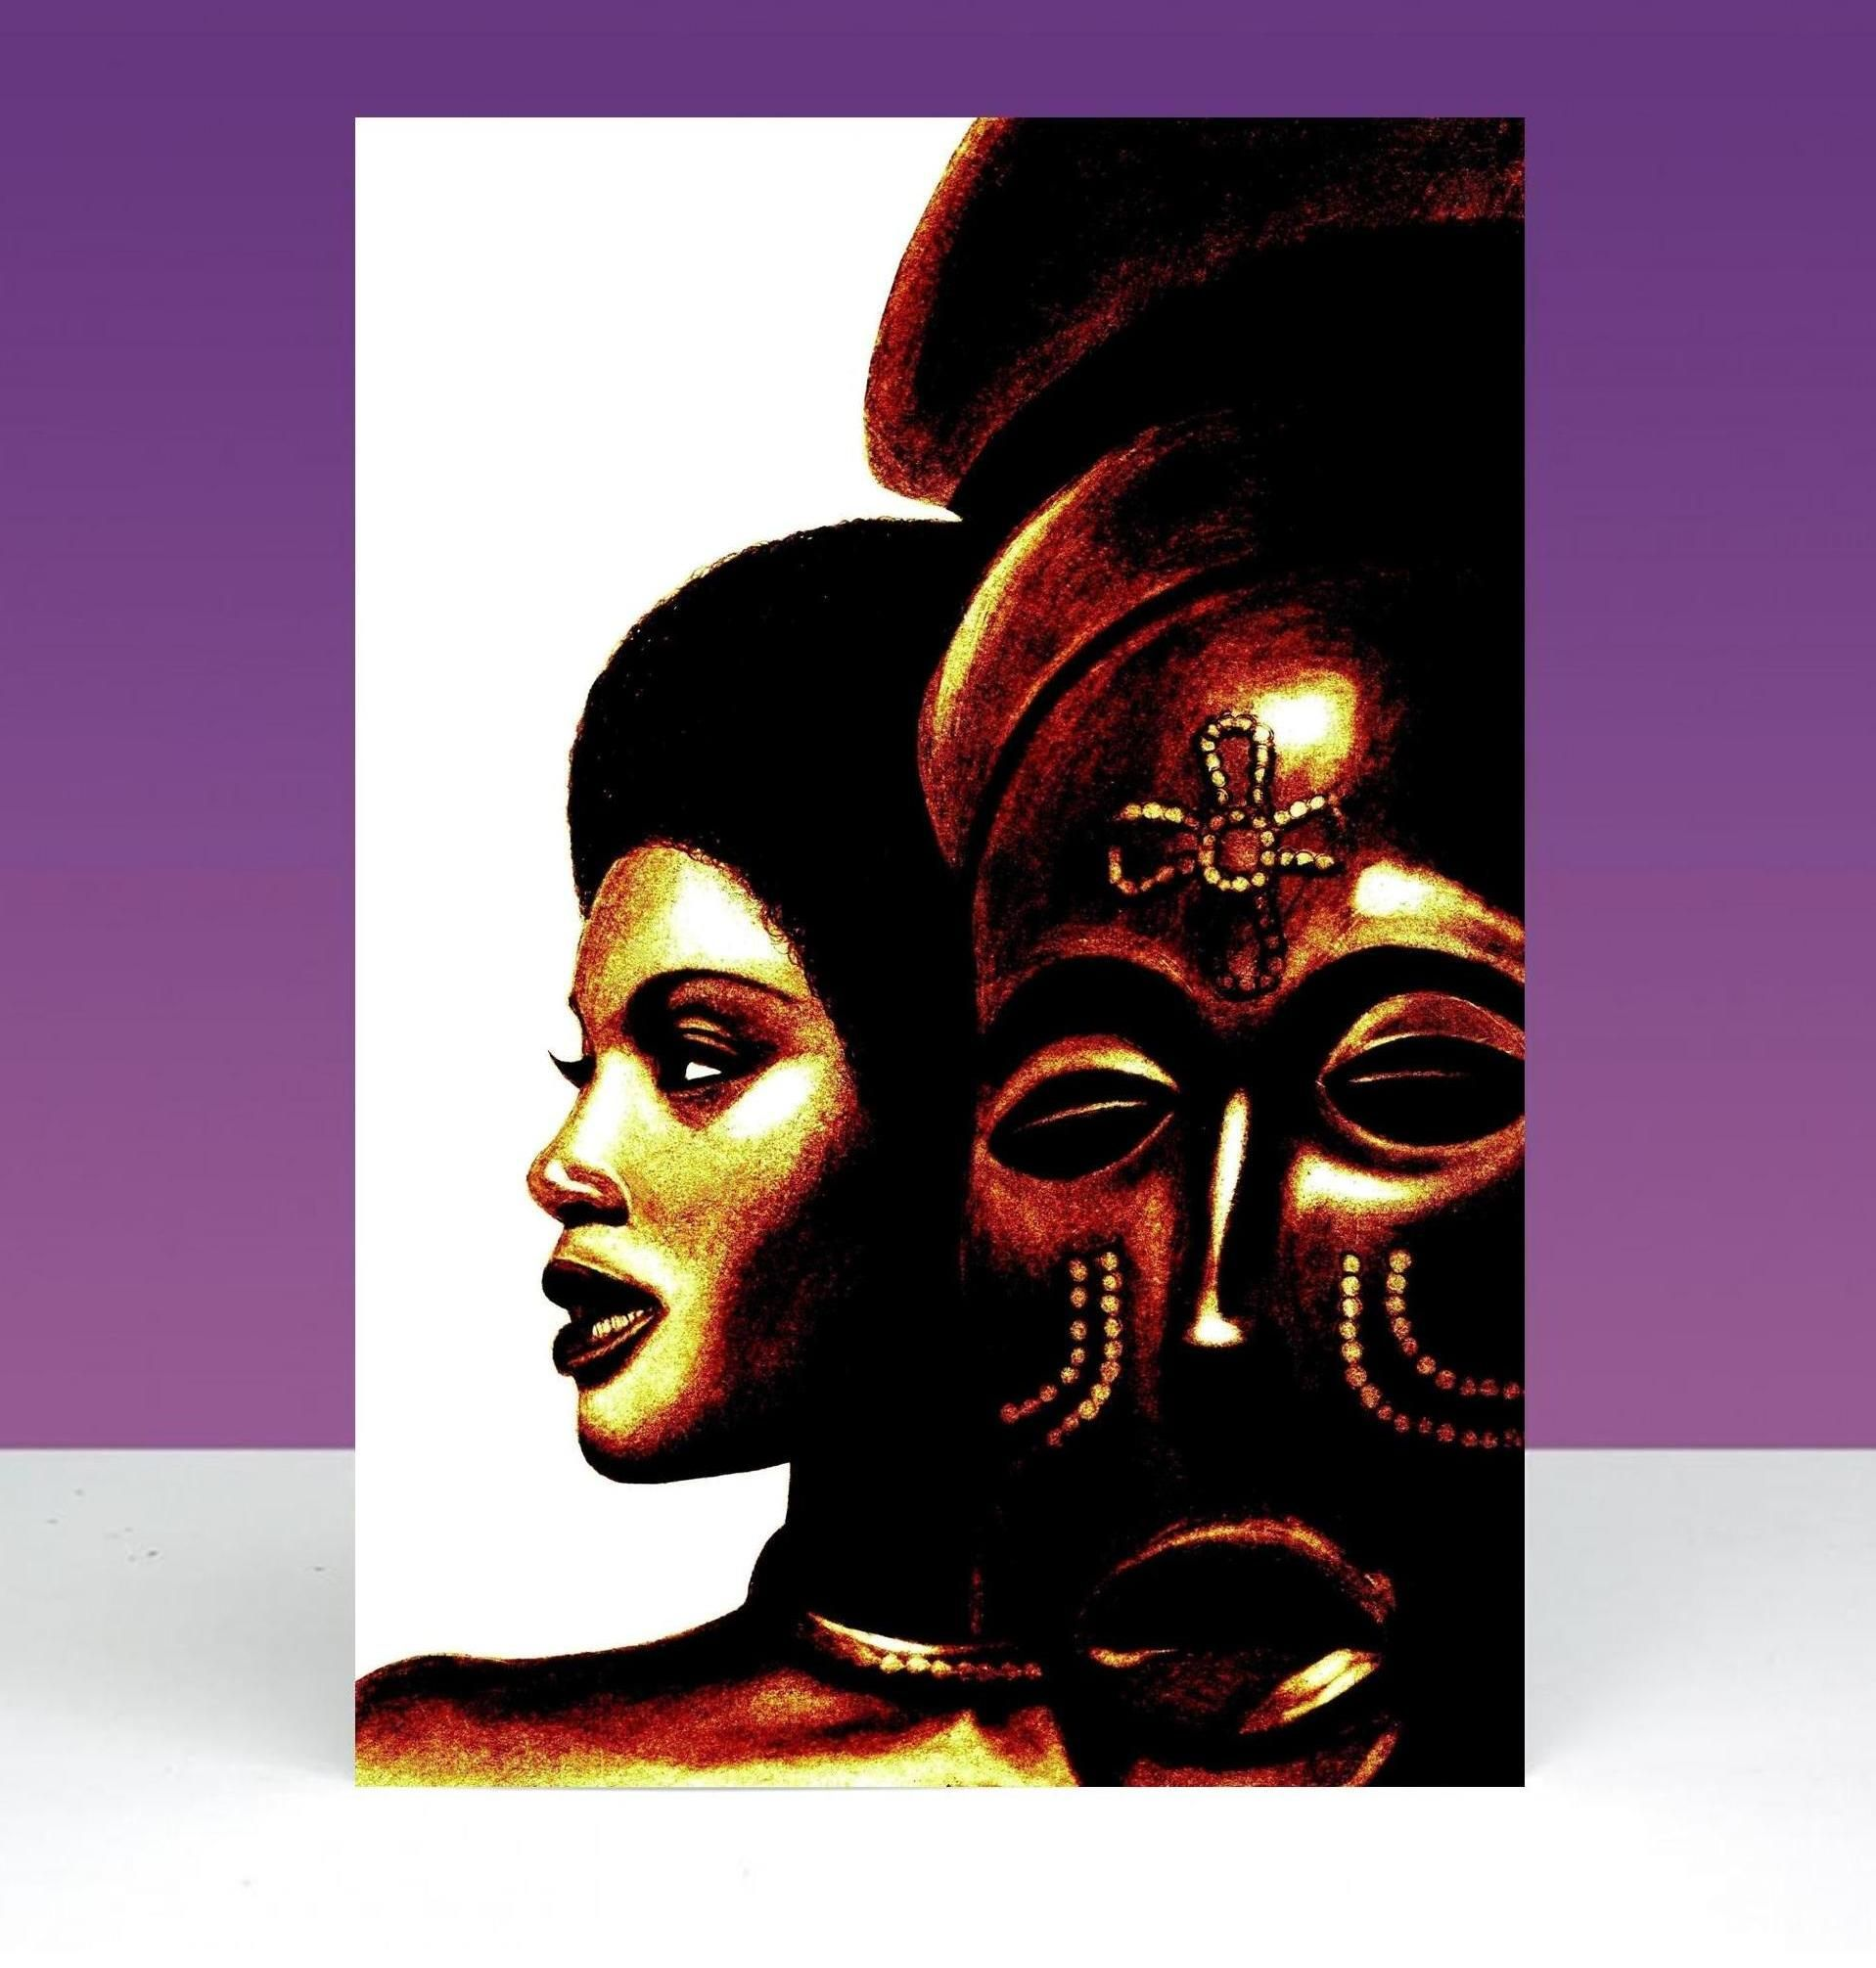 Woman and african mask culture and arts pinterest african quality black people greeting cards for all occasions celebrating black british african caribbean african american and dual heritage people kristyandbryce Image collections